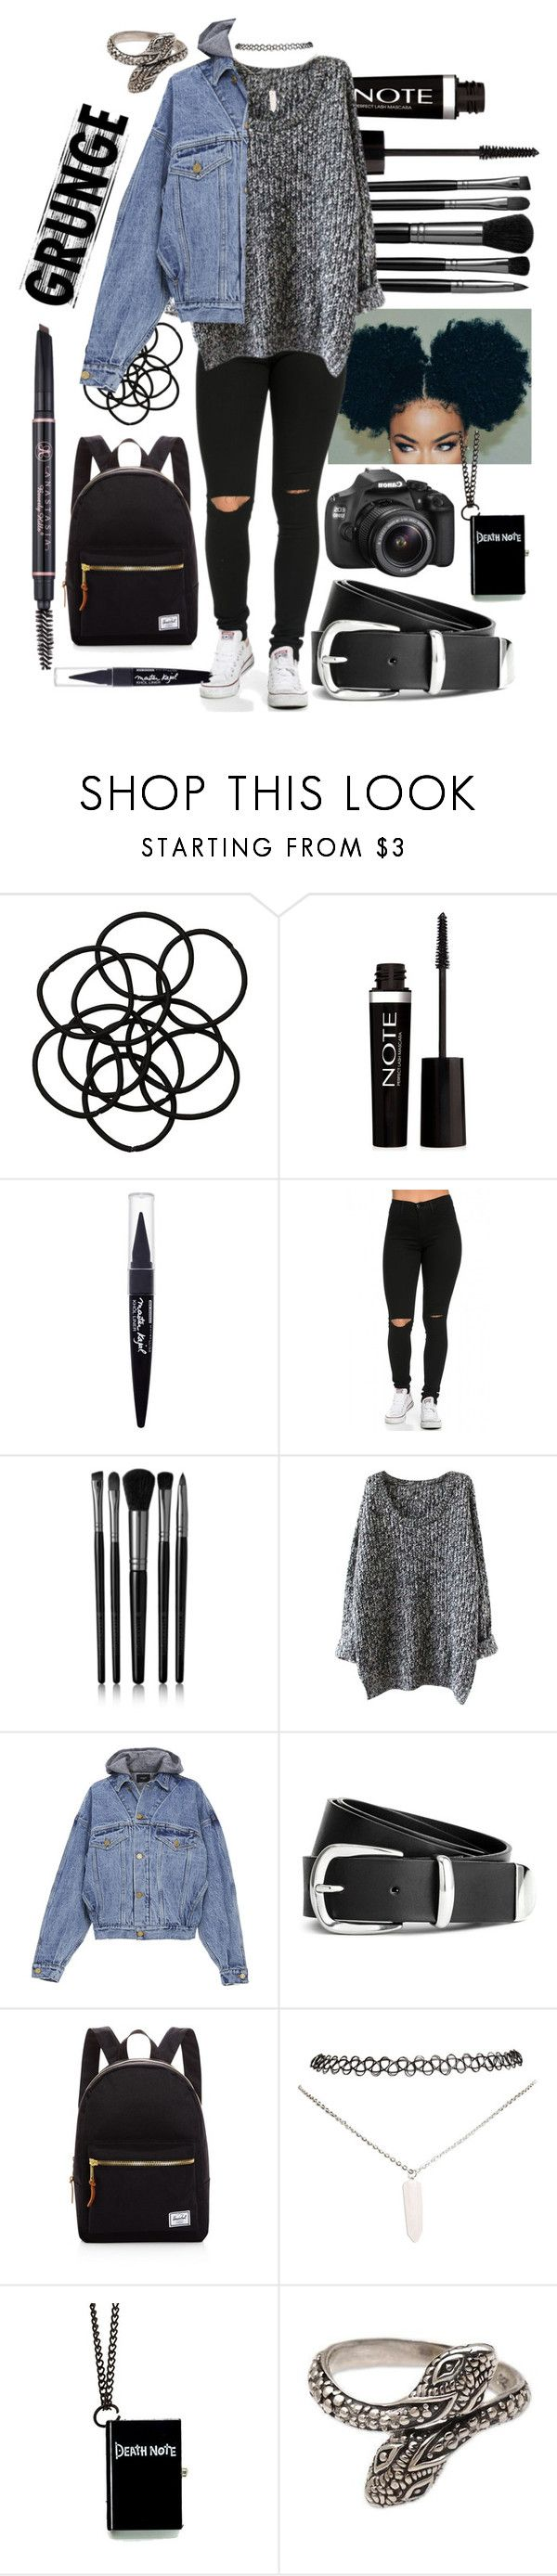 """""""Untitled #628"""" by the-fashion-fantasy ❤ liked on Polyvore featuring Monki, Forever 21, Maybelline, Illamasqua, Fear of God, H&M, Herschel Supply Co., Wet Seal, Eos and NOVICA"""